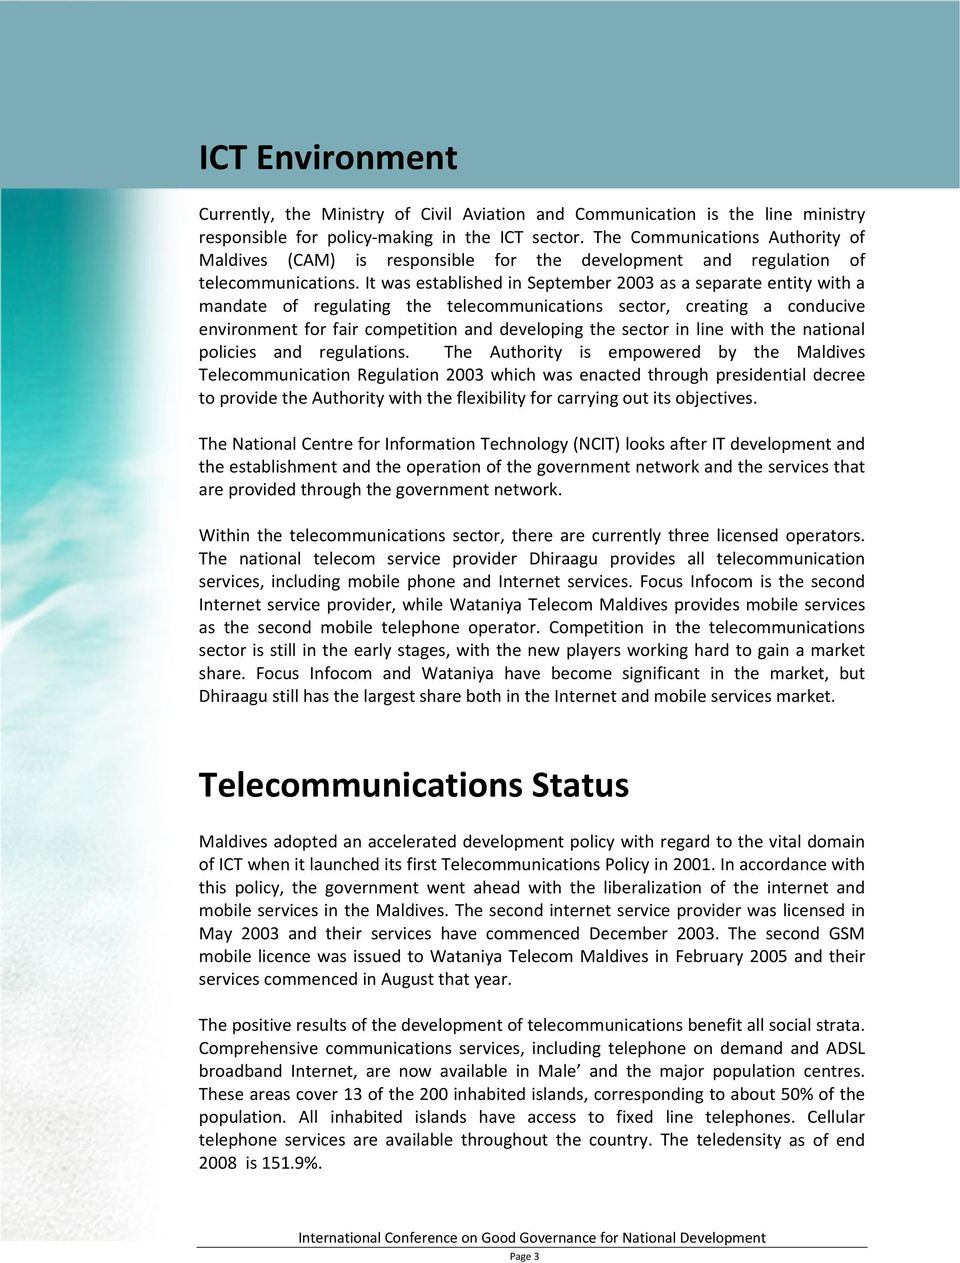 It was established in September 2003 as a separate entity with a mandate of regulating the telecommunications sector, creating a conducive environment for fair competition and developing the sector